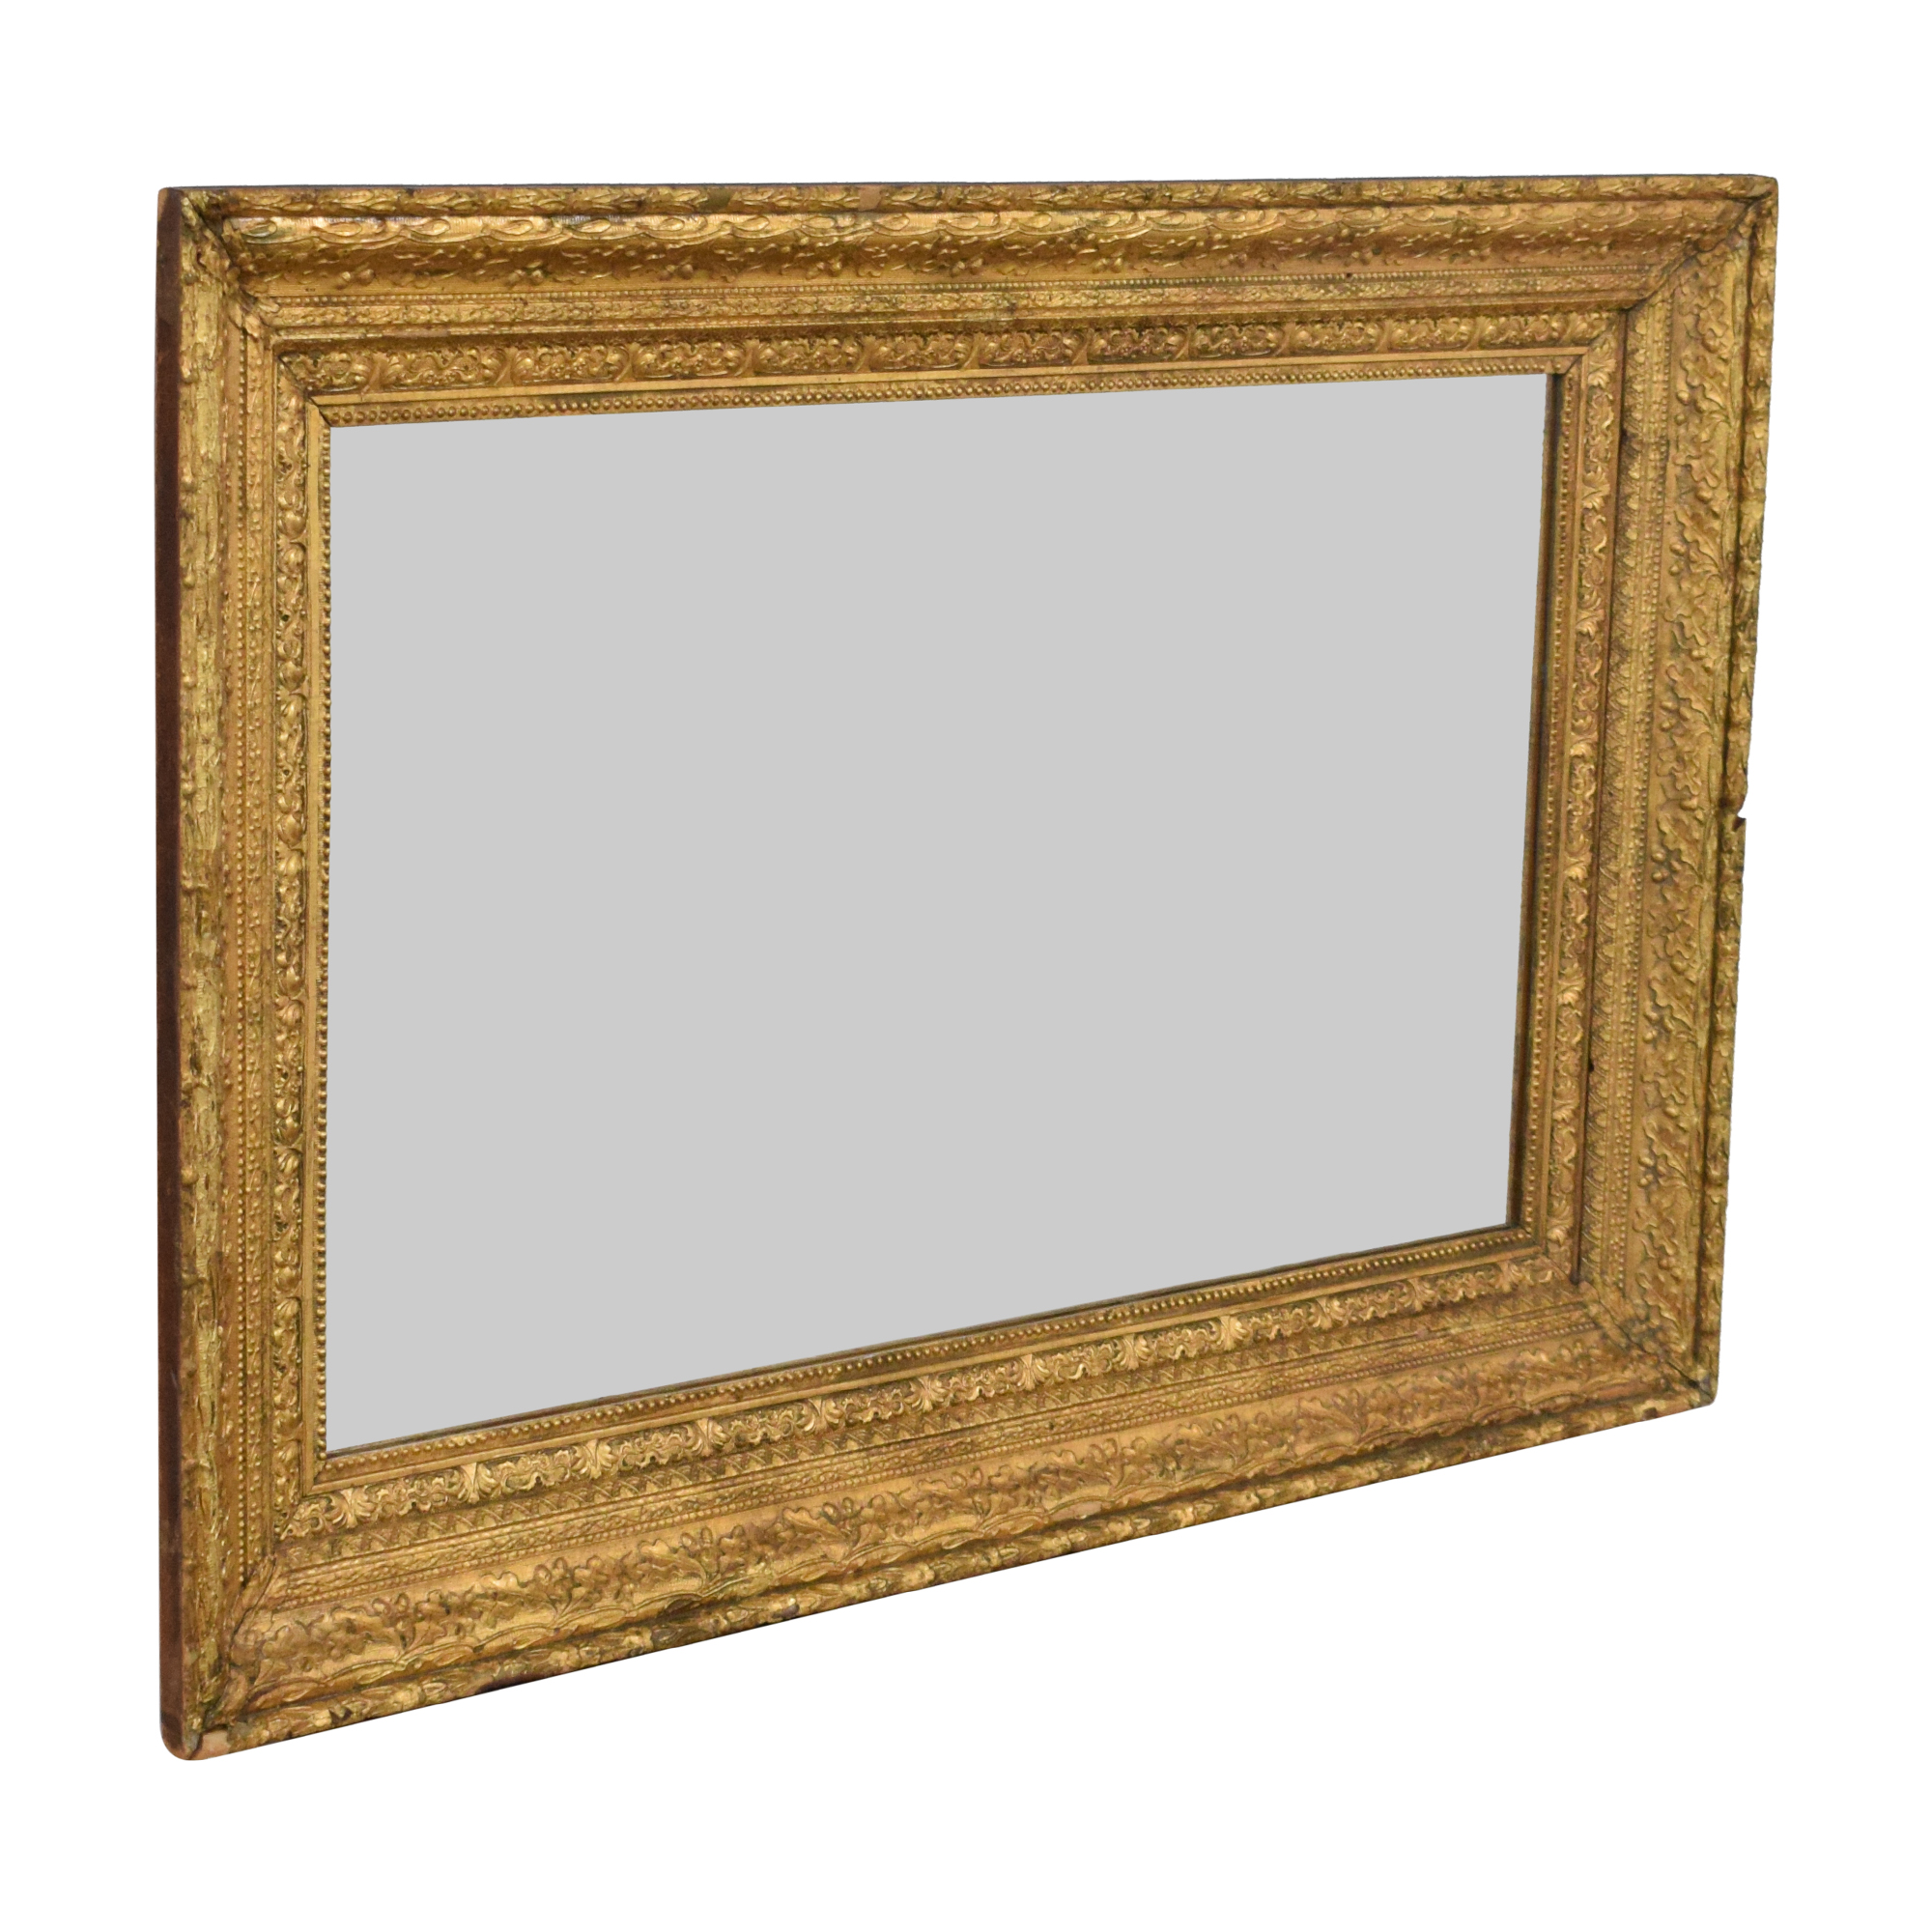 Antique Framed Decorative Wall Mirror pa